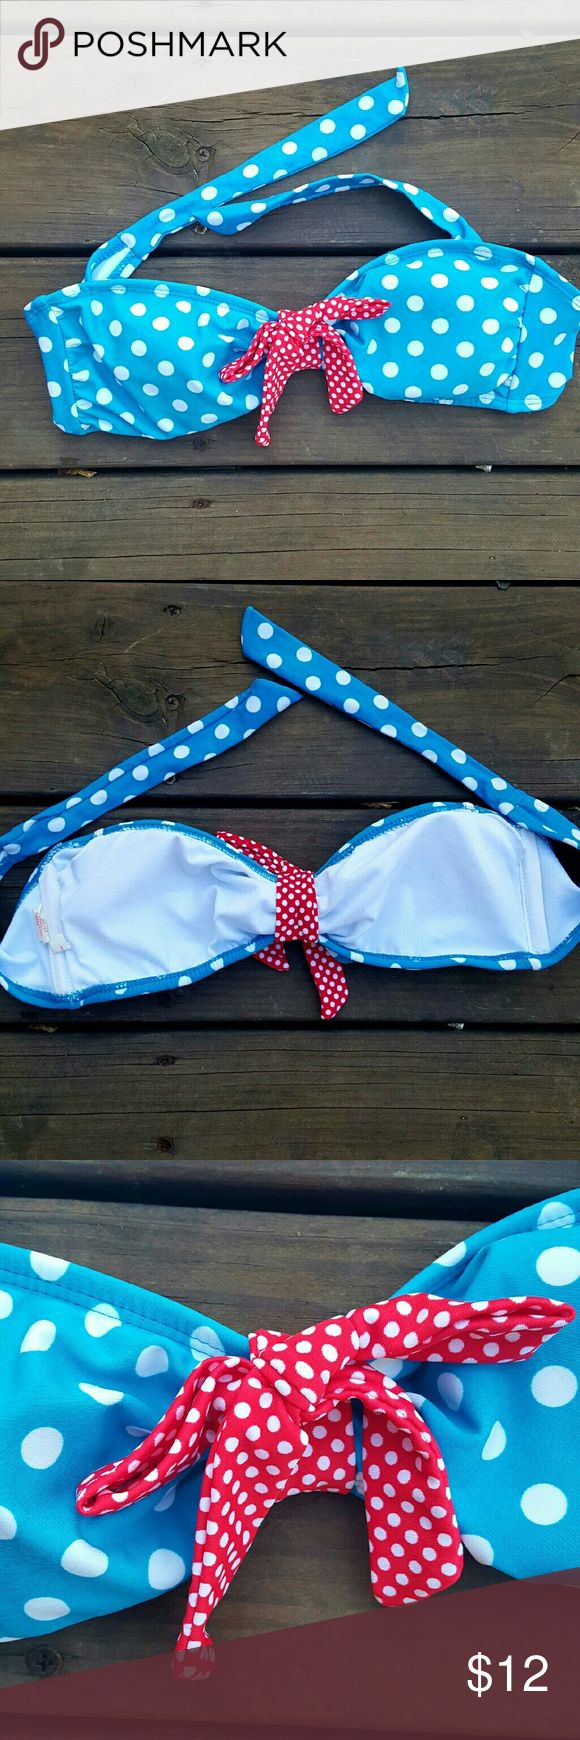 Polka Dot Xhilaration Bandeau Bikini Top PERFECT for the 4th of July!! Worn only a few times with no signs of wear. The back of it ties, and I unfortunately do not have the straps to go along with it. The bow in the middle does not make the top come apart when untied.   Size medium  *reasonable offers accepted Xhilaration Swim Bikinis